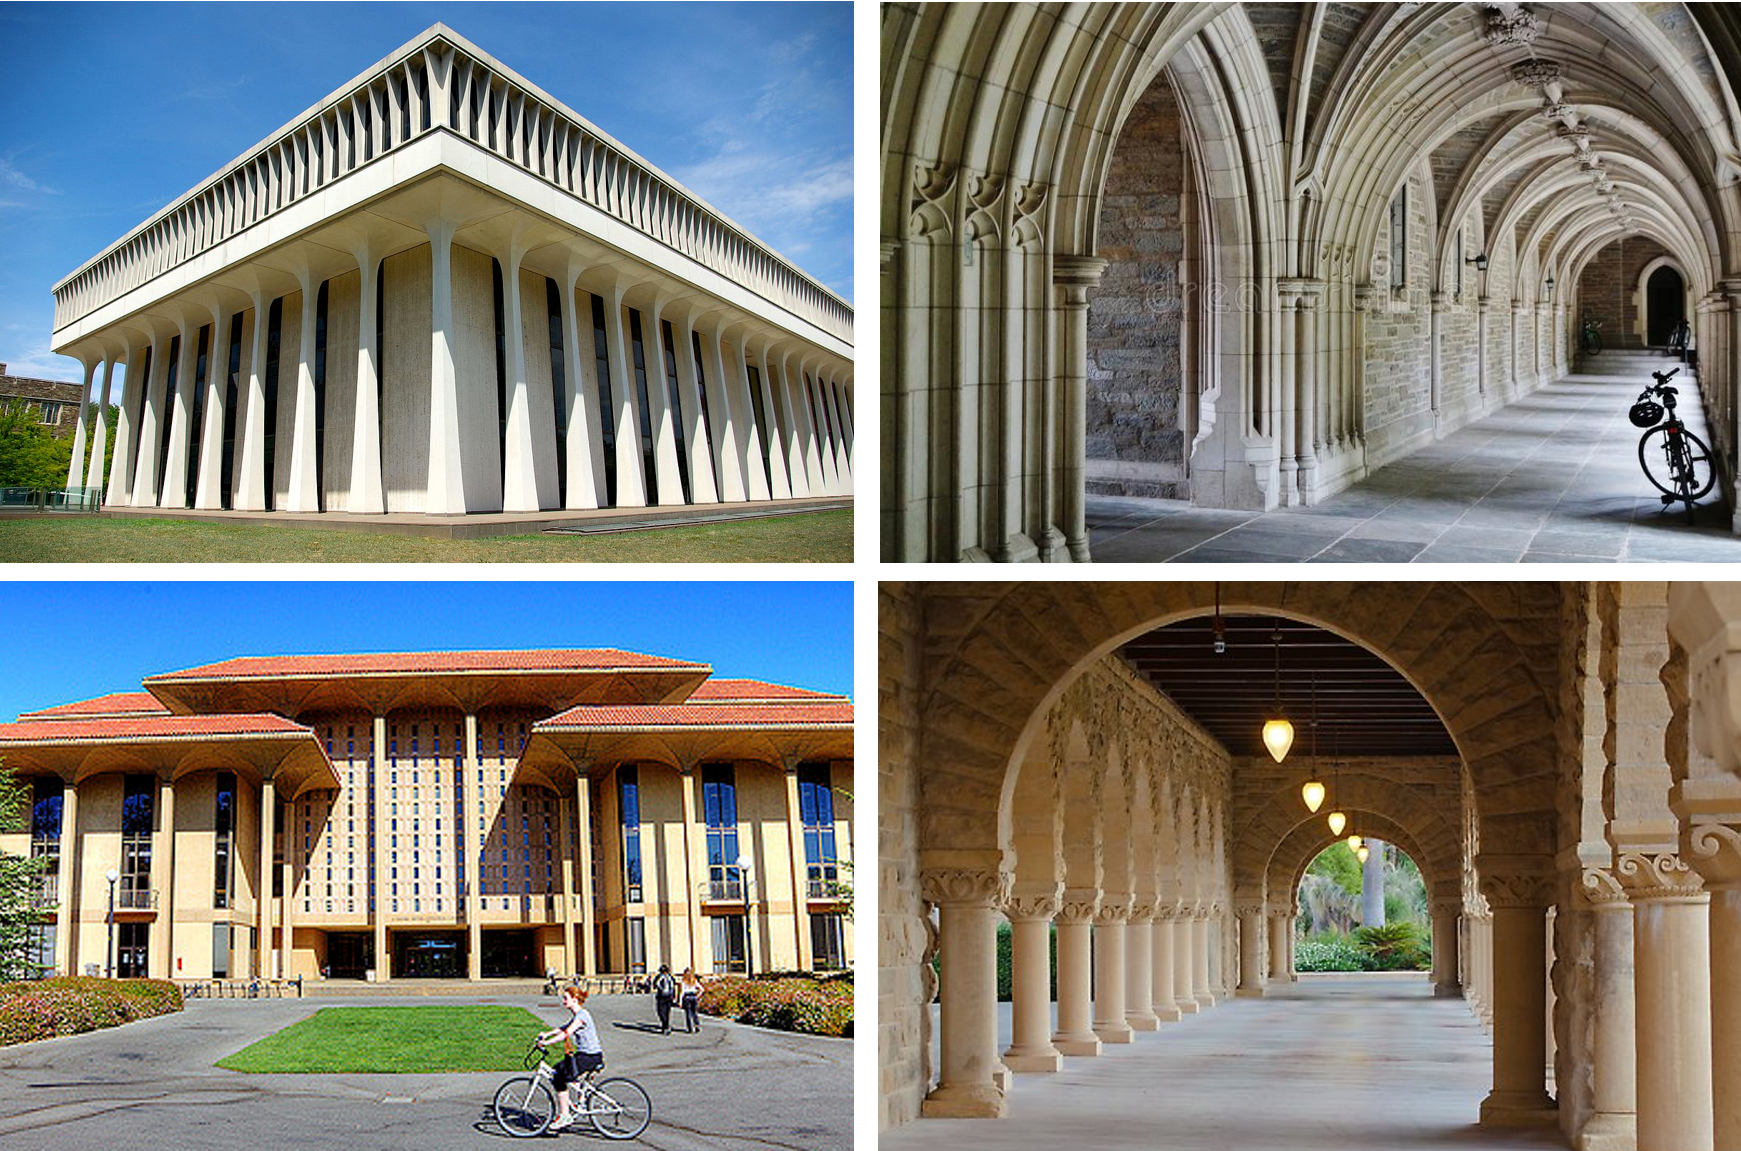 NOT TRYING ENOUGH Most of the mid-century architecture that proliferated across American college campuses offered little of what was good about modern architecture while also managing to degrade the traditional architecture of the campuses they occupied (Top: Woodrow Wilson School of Public and International Affairs, Princeton University; Bottom: J Henry Meyer Memorial Library, Stanford University)